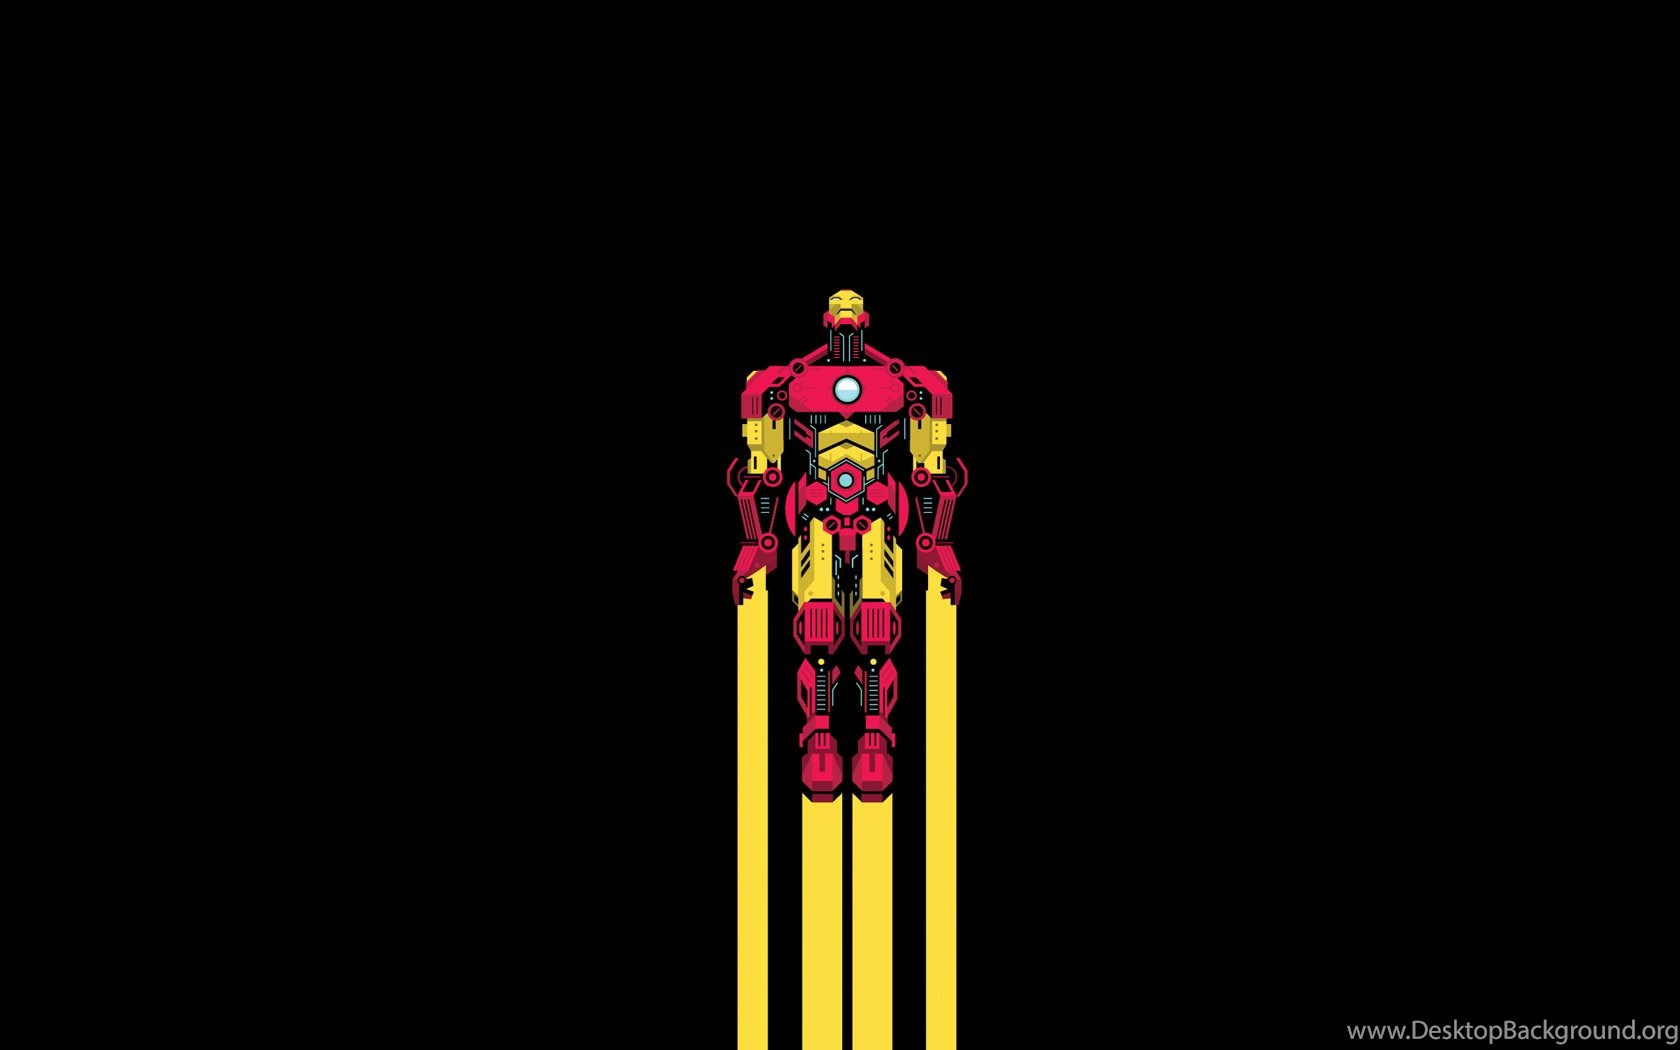 Wallpapers Minimalist Superhero Displaying Images For Iphone